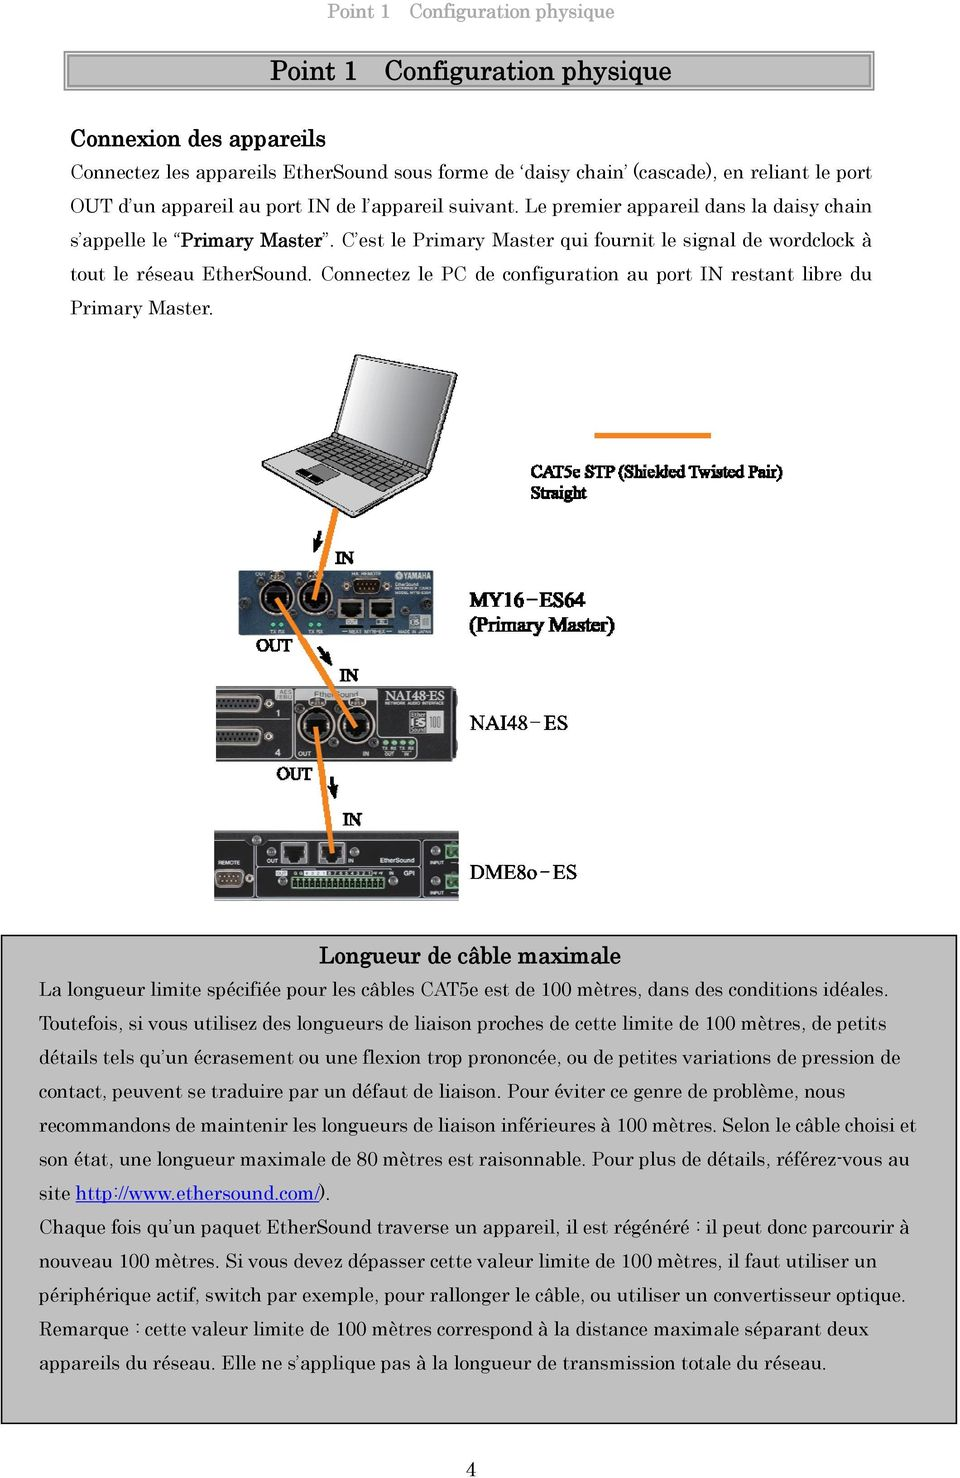 Connectez le PC de configuration au port IN restant libre du Primary Master.